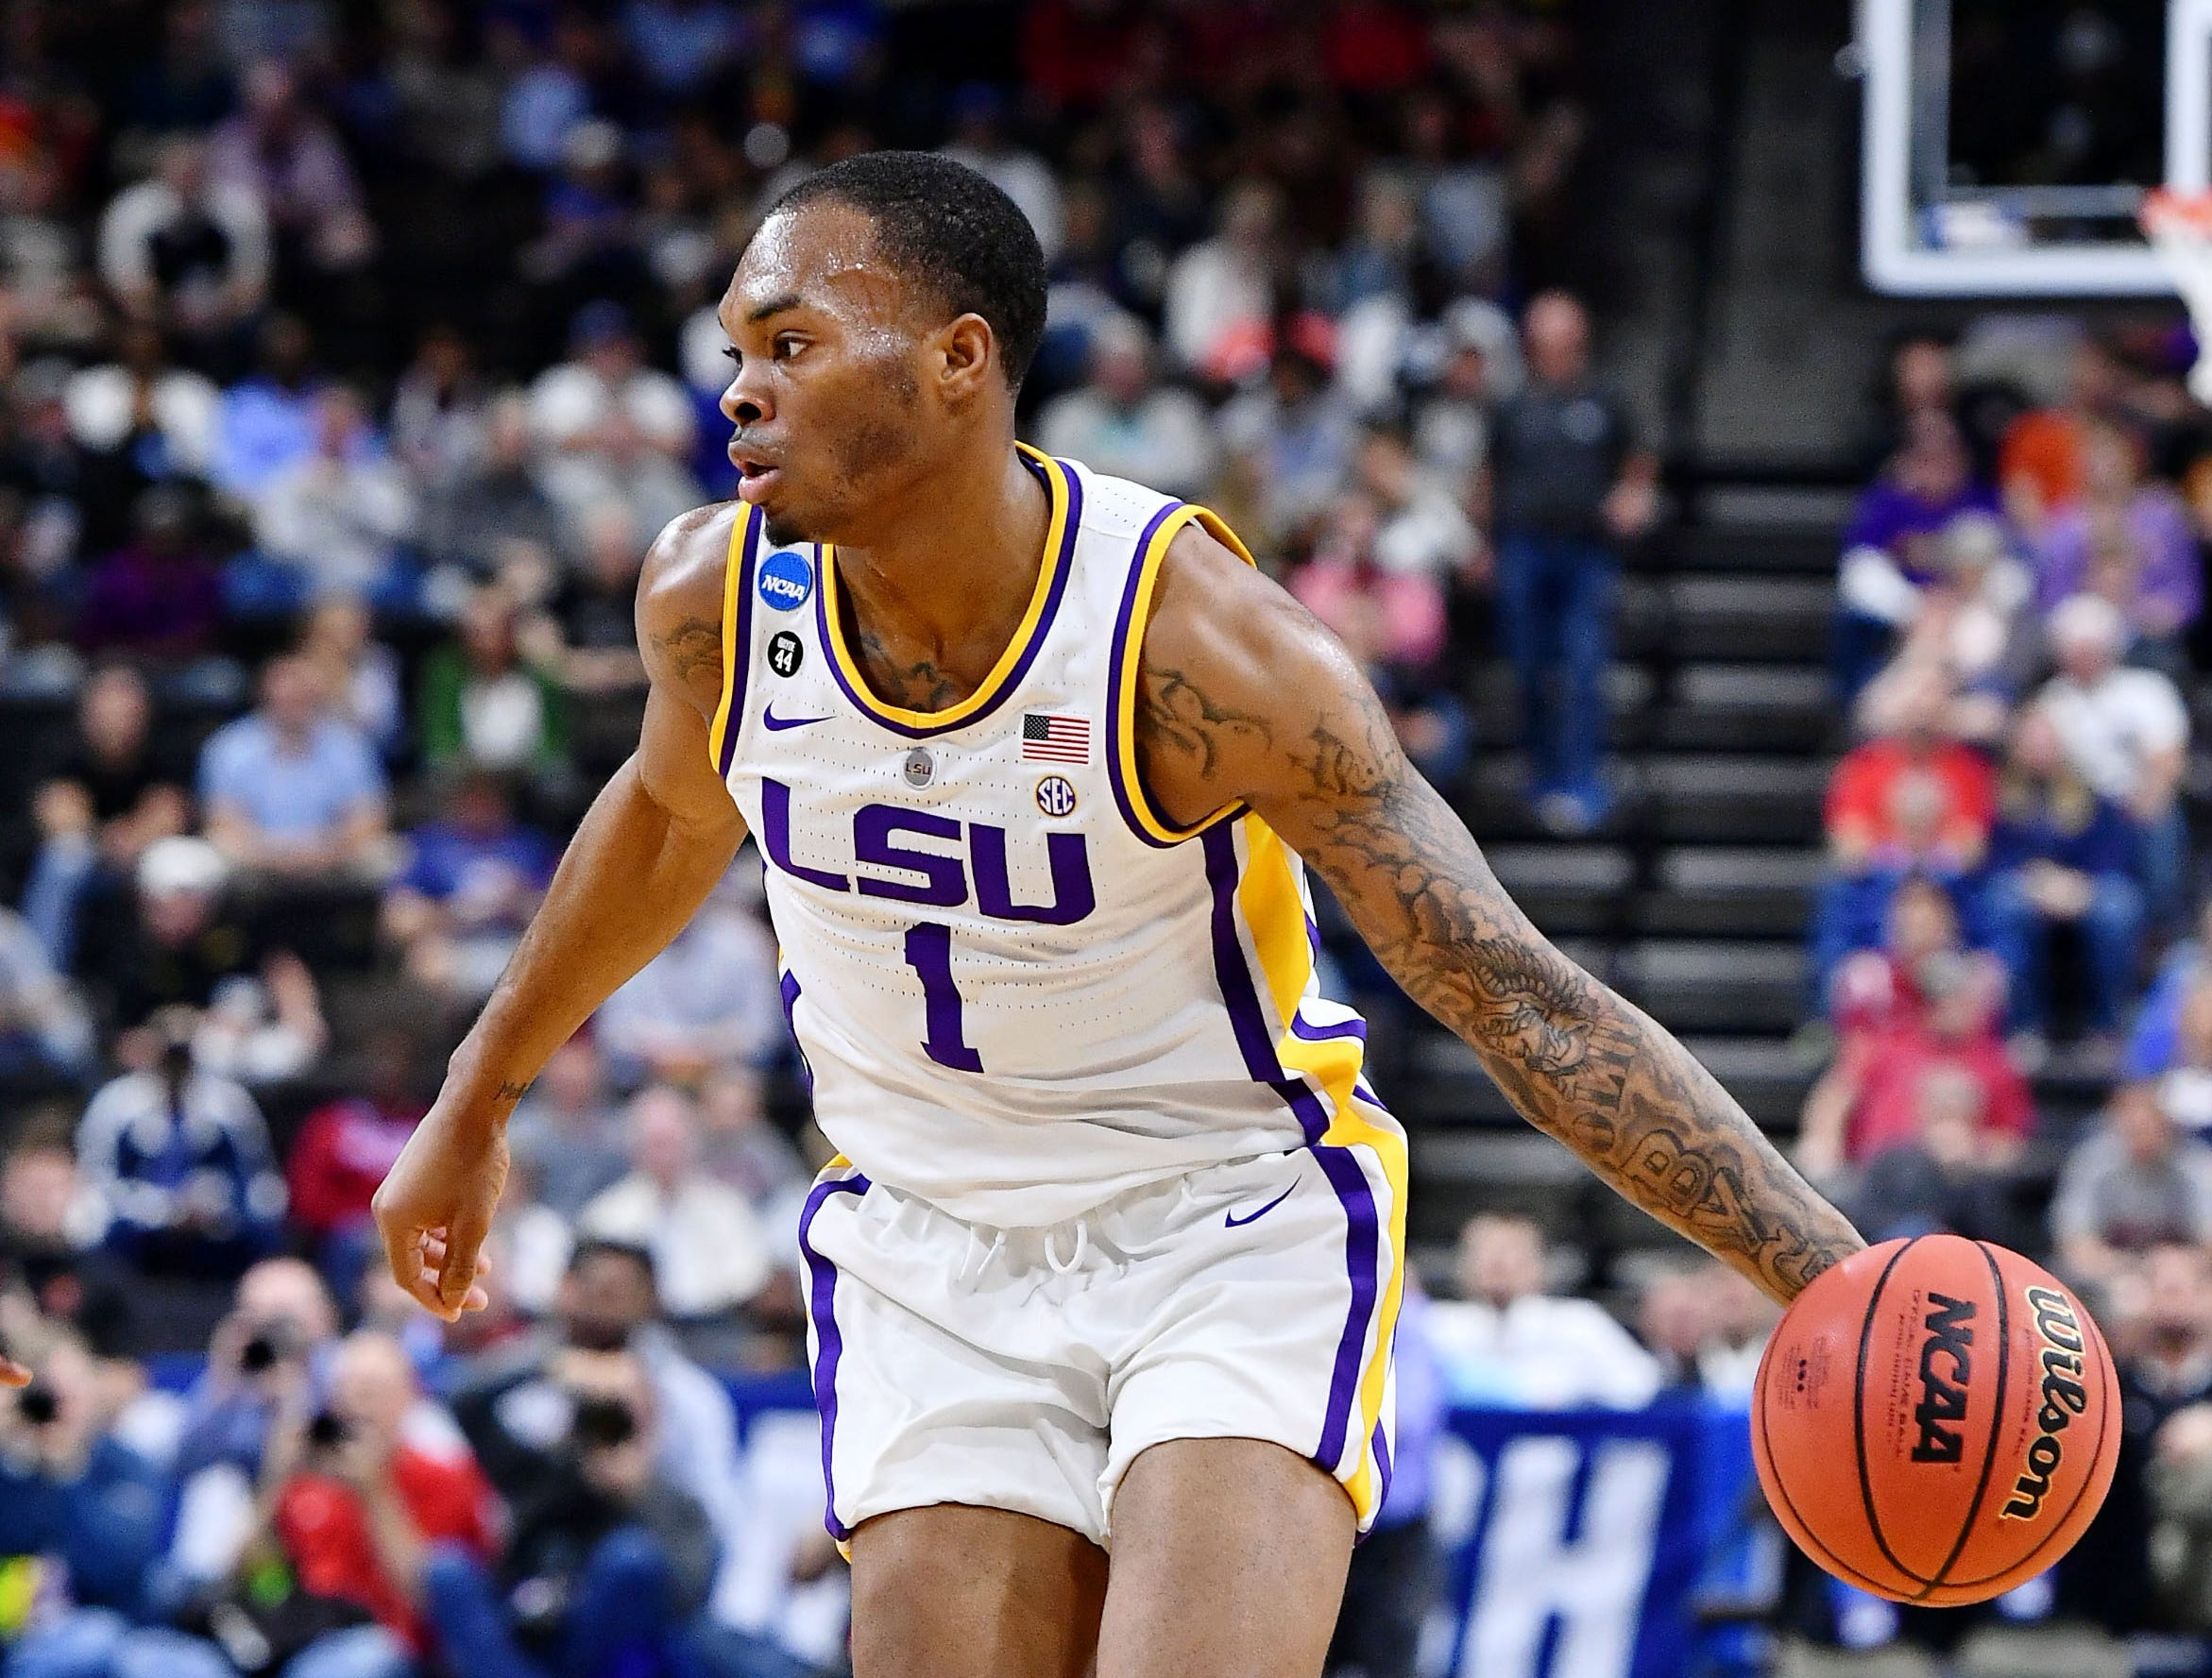 Mar 23, 2019; Jacksonville, FL, USA; LSU Tigers guard Javonte Smart (1) dribbles the ball against the Maryland Terrapins during the first half in the second round of the 2019 NCAA Tournament at Jacksonville Veterans Memorial Arena. Mandatory Credit: John David Mercer-USA TODAY Sports